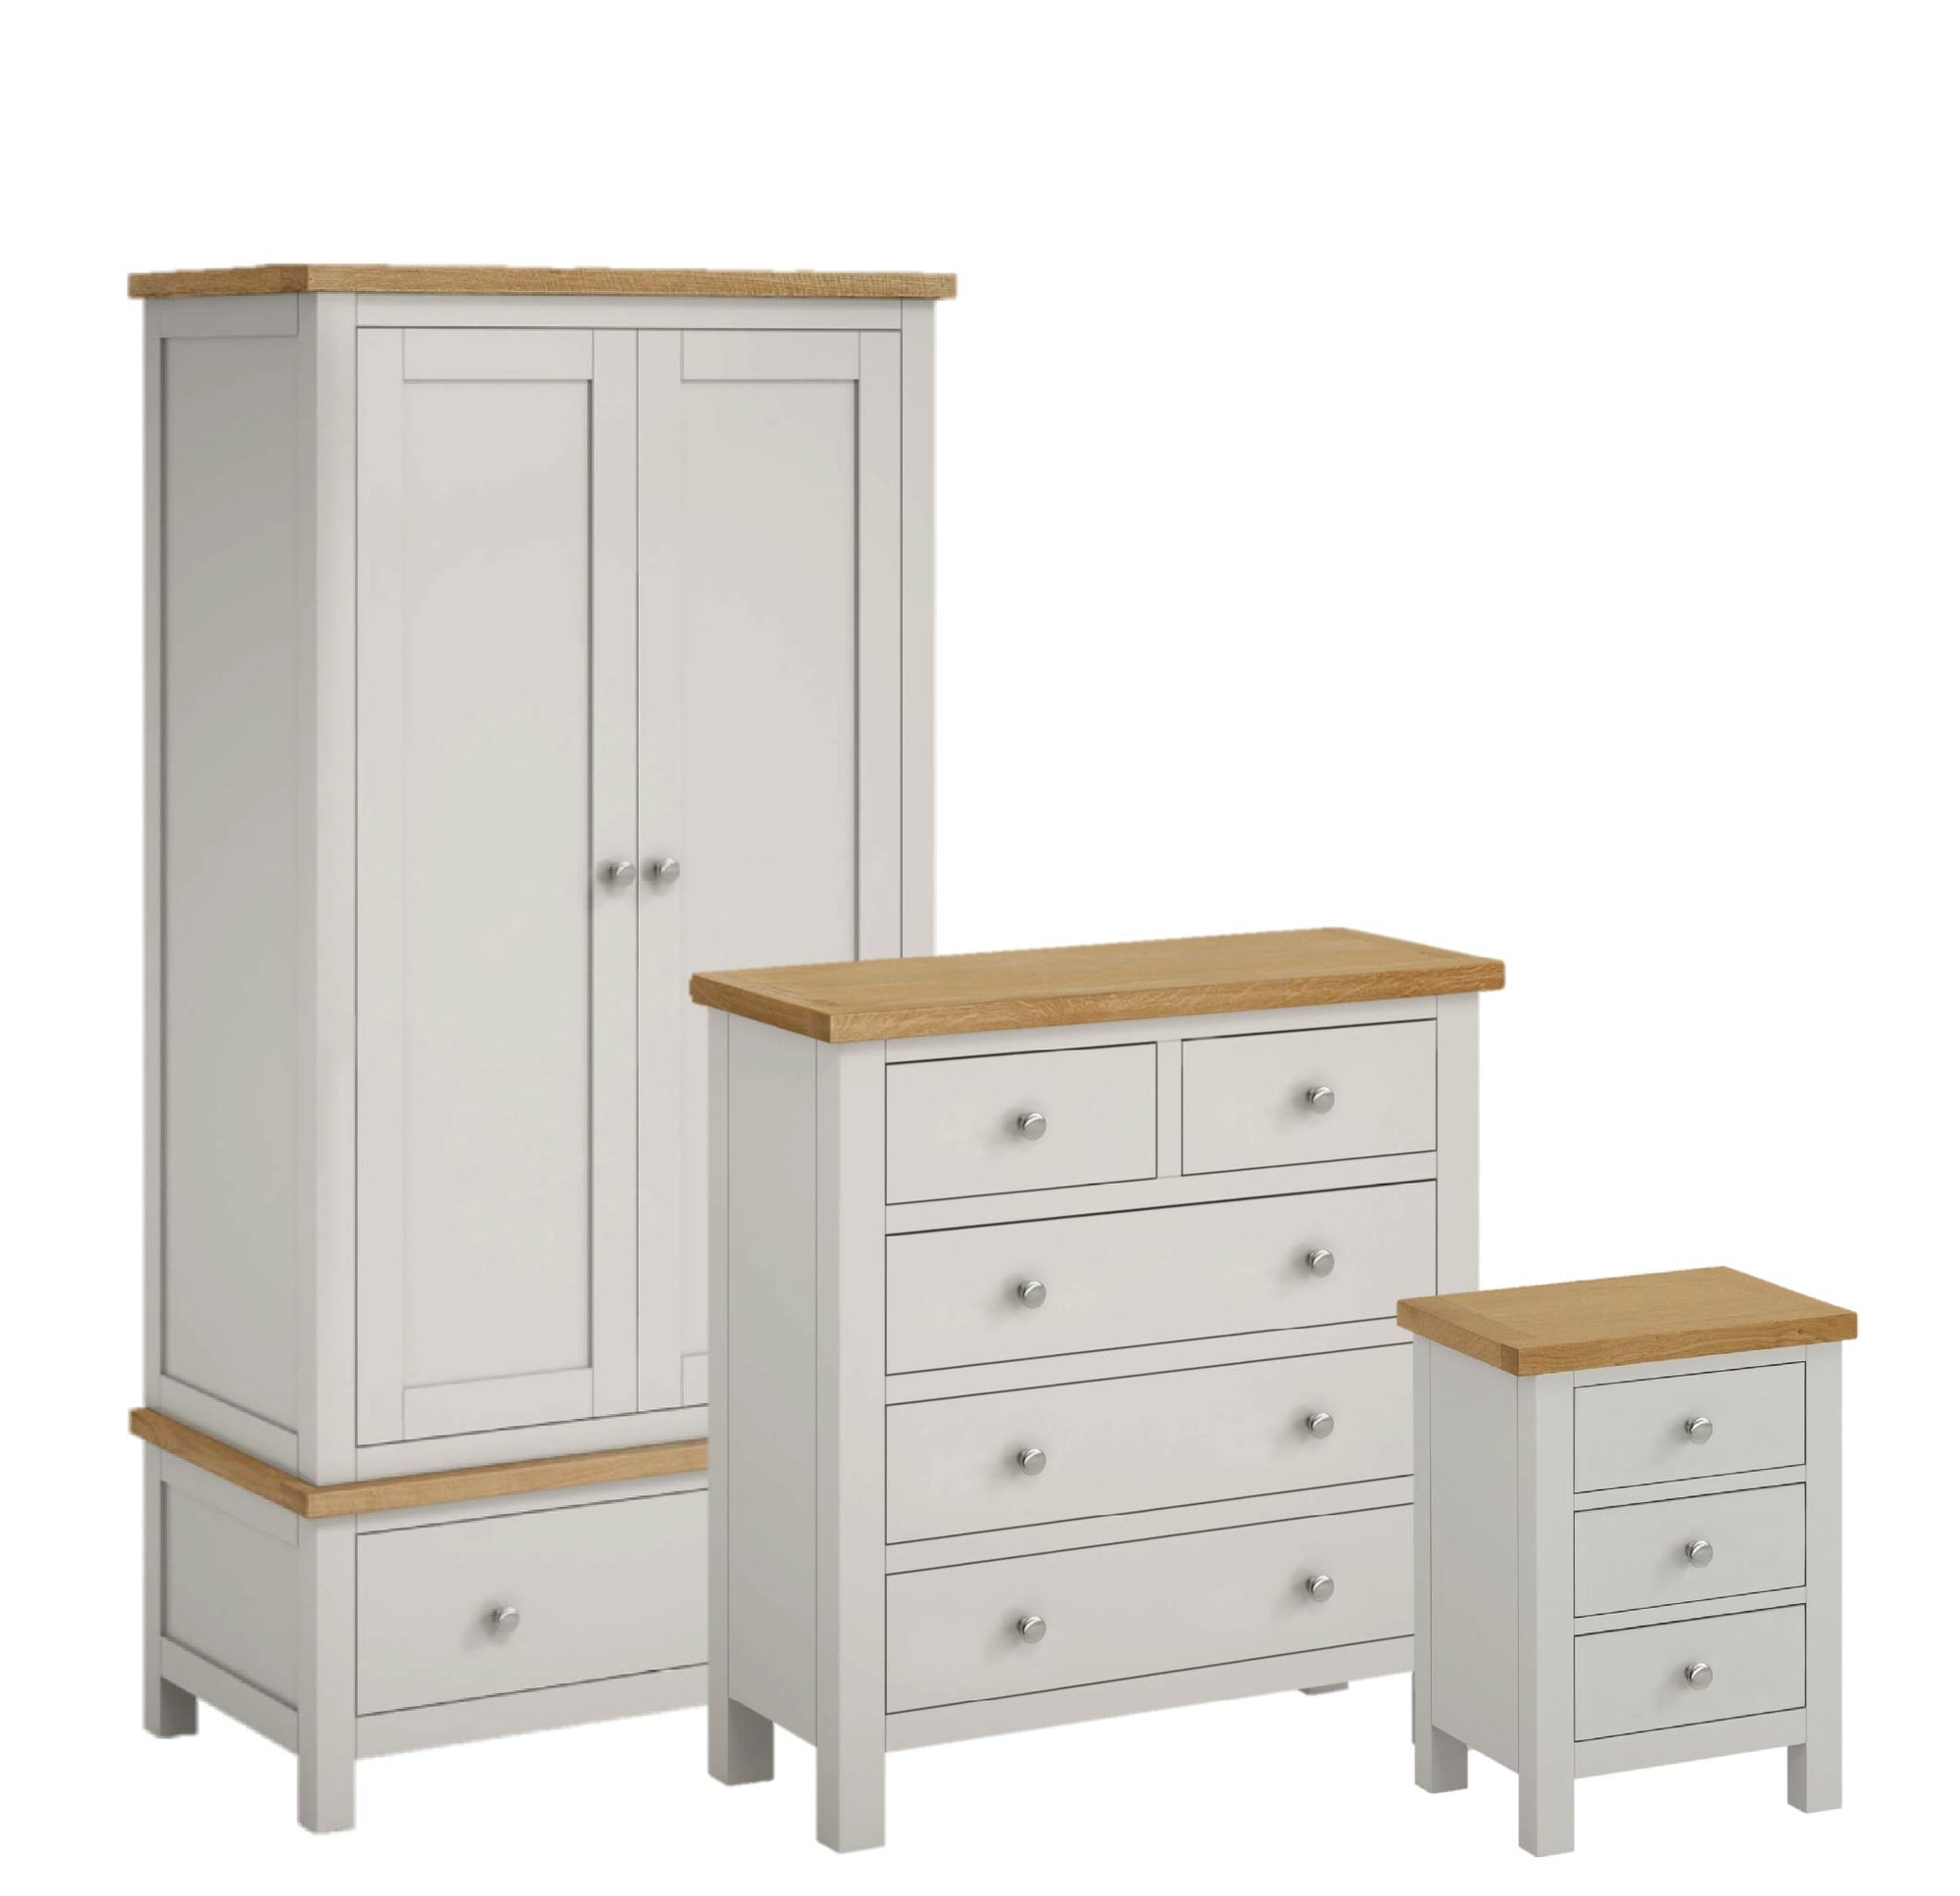 Farrow Grey Bedroom Set with 2 Over 3 Chest by Roseland Furniture